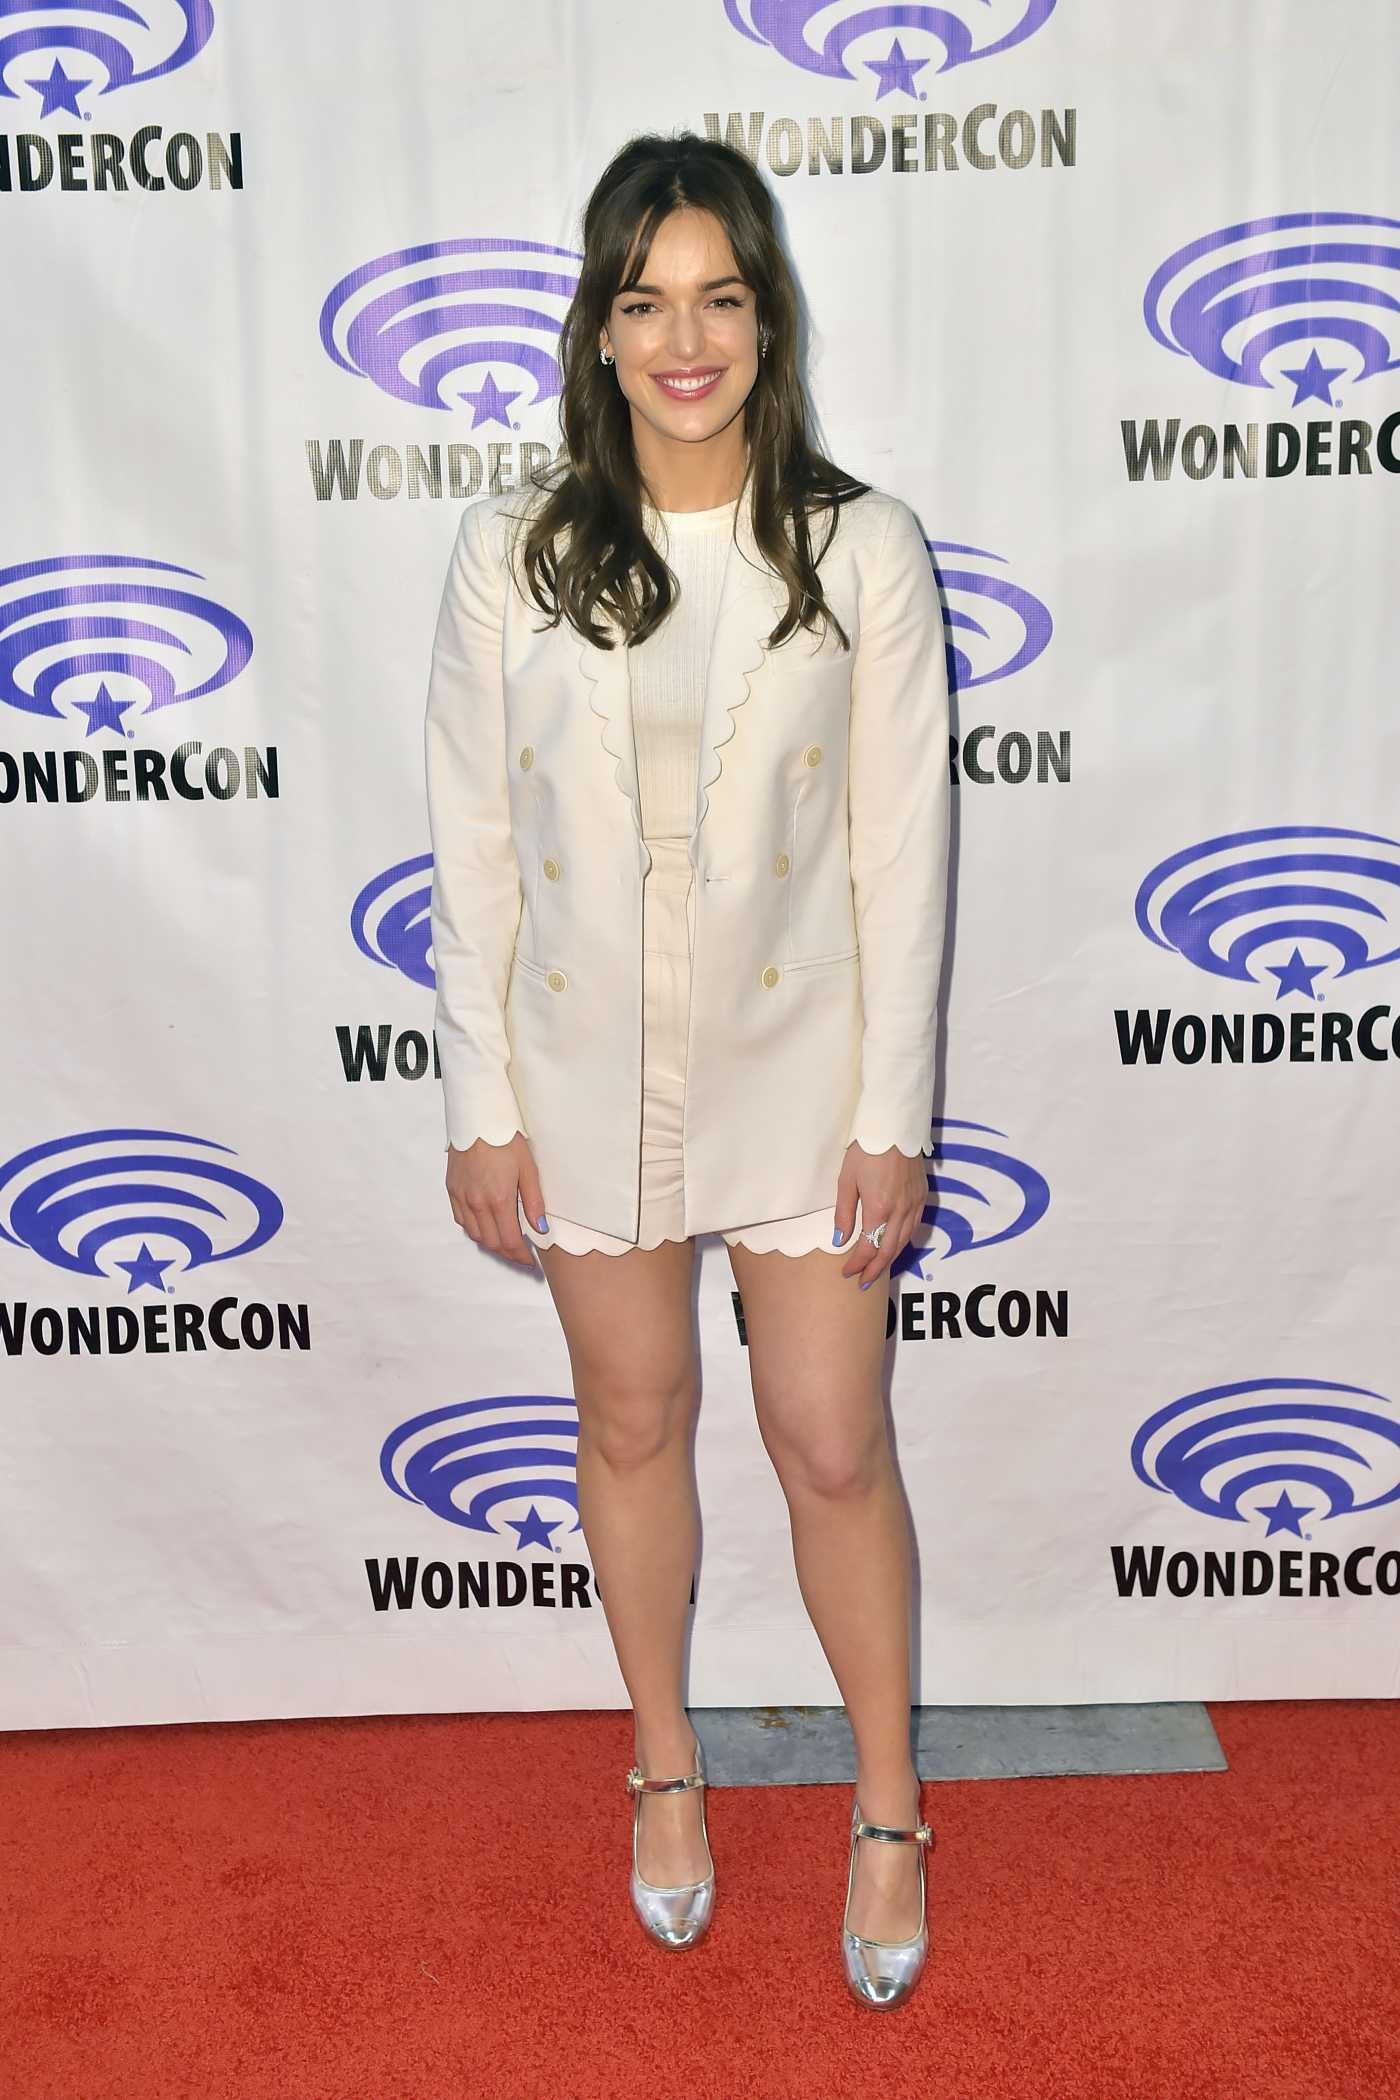 Elizabeth Henstridge Attends Marvel's Agents of S.H.I.E.L.D. Press Line During 2019 WonderCon in Anaheim 03/30/2019